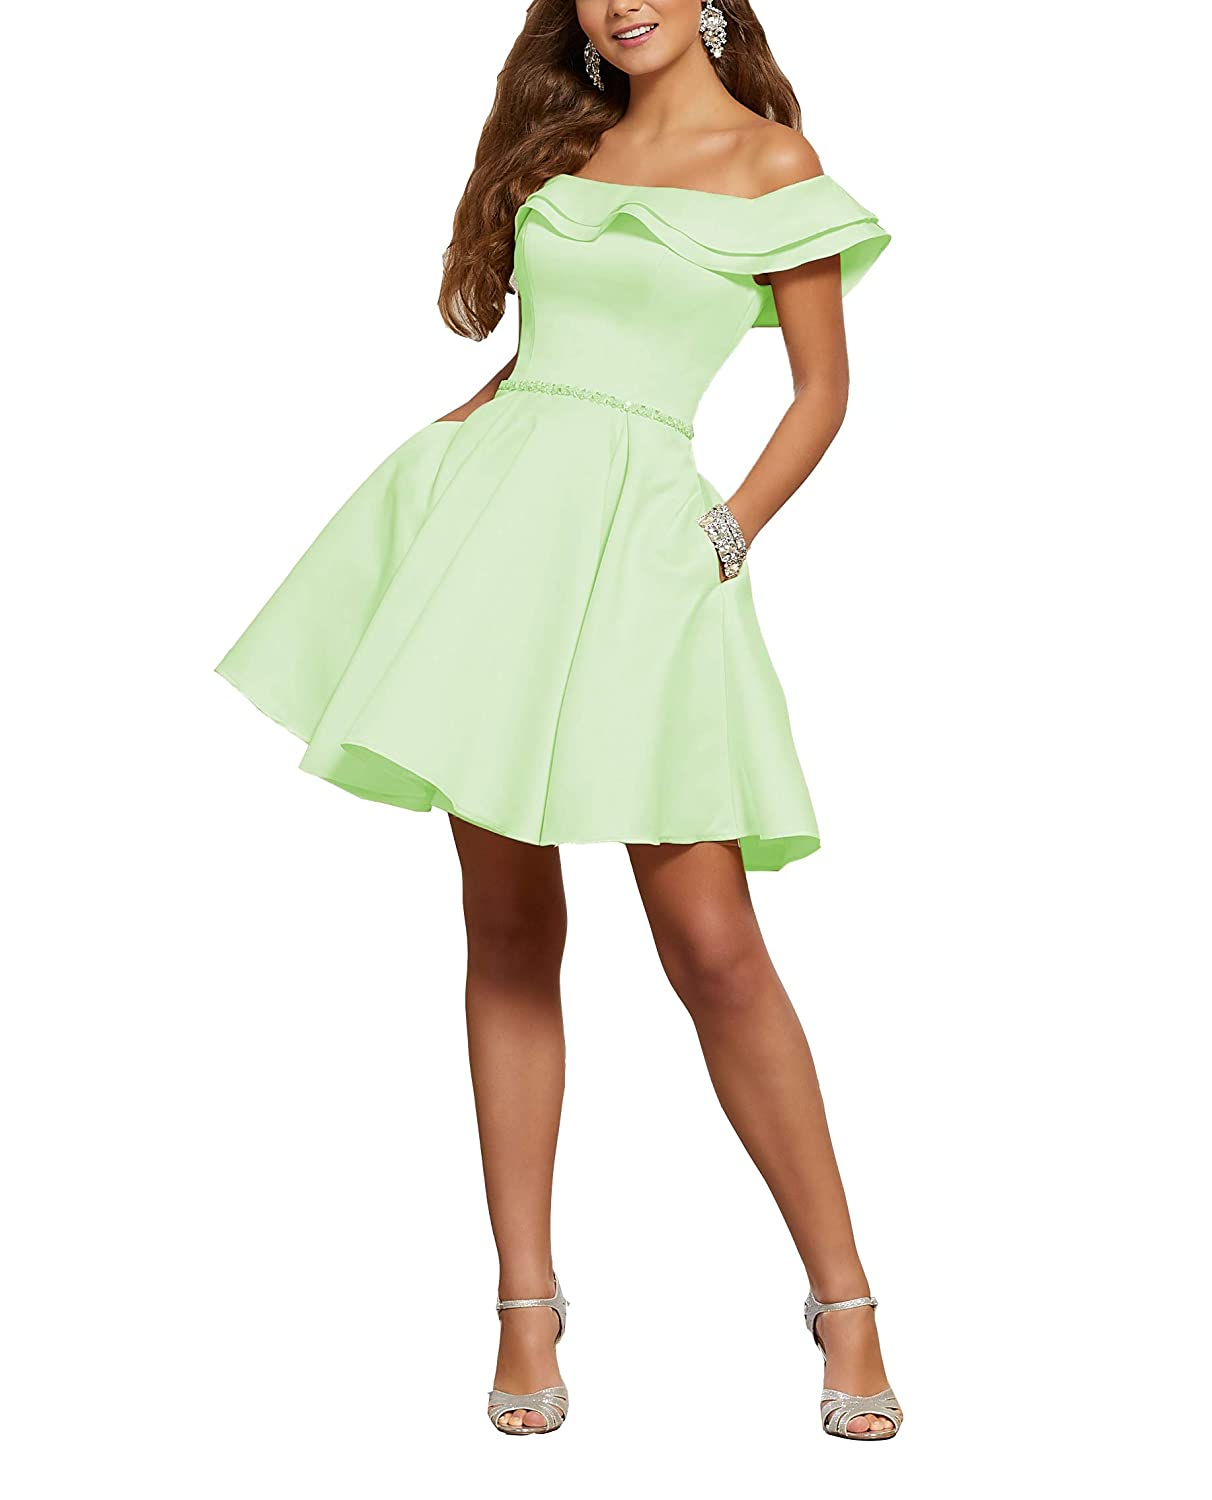 Shortmint YMSHA Women's Halter Prom Dresses with Pockets Long Satin Crystal Evening Formal Gown O38PM